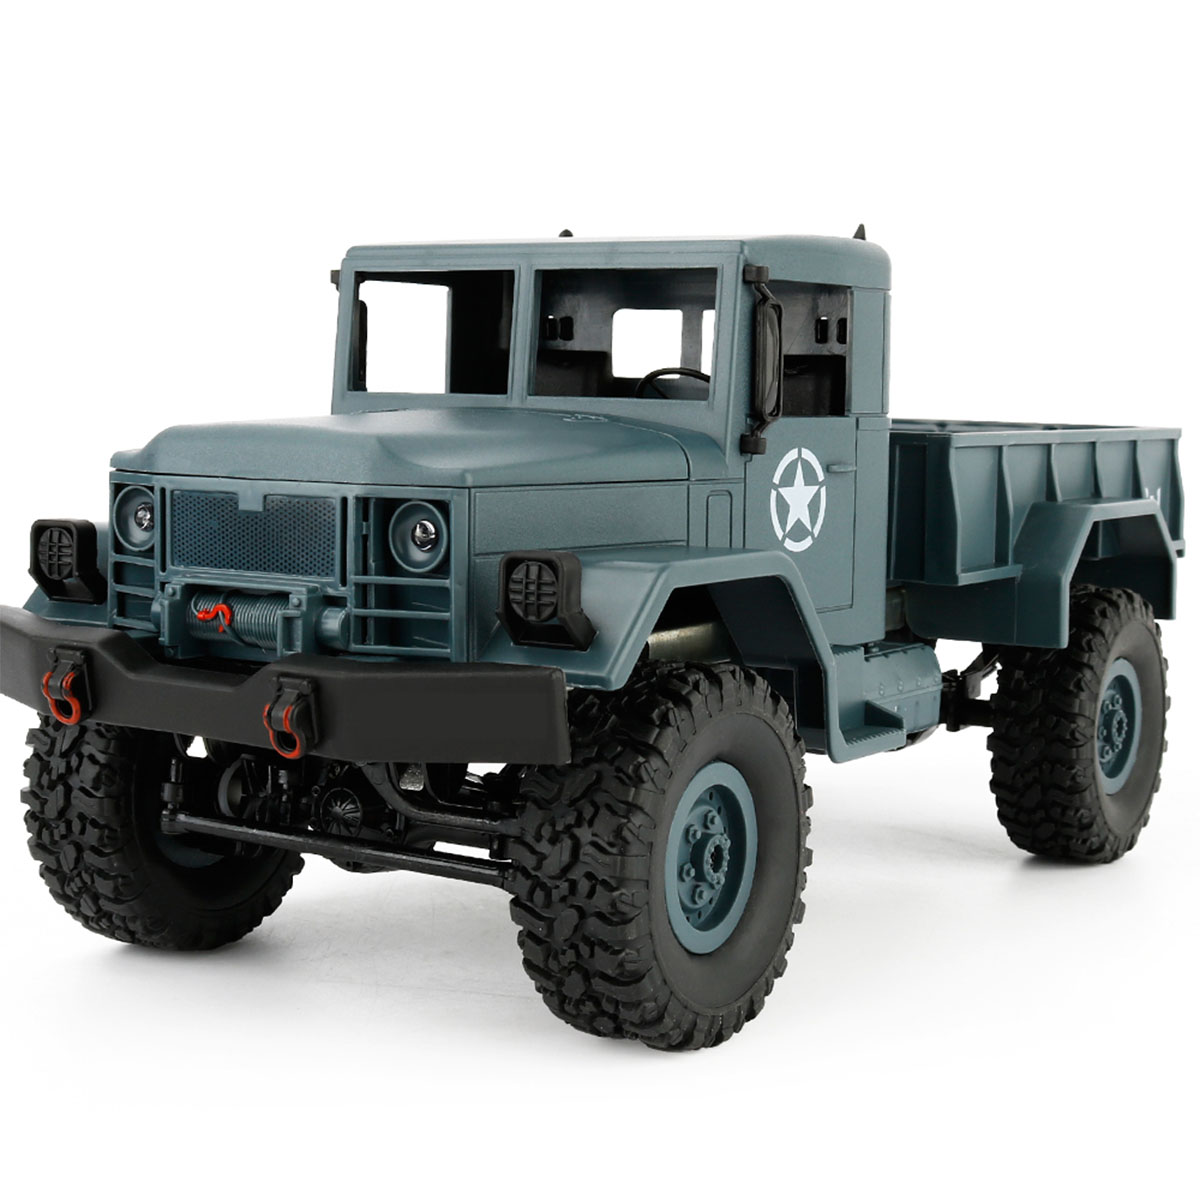 WPL B1 Mini Off-Road Drive Metal Remote Control RC Toy Cars RC Military Truck 1:16 Crawler Car With Light Bright LED RTR Toy